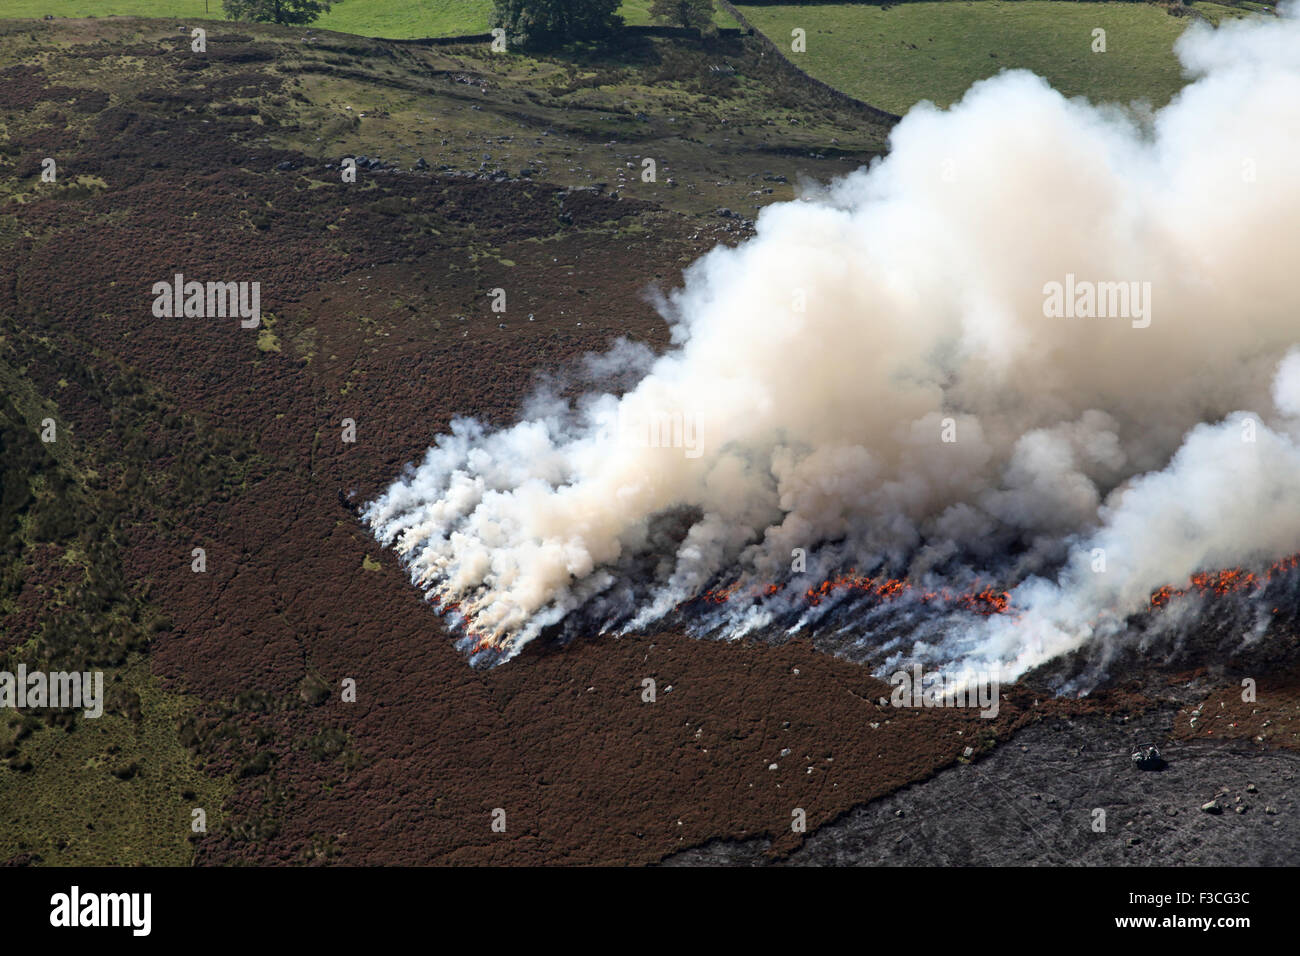 aerial view of stubble burning in northern England, UK - Stock Image